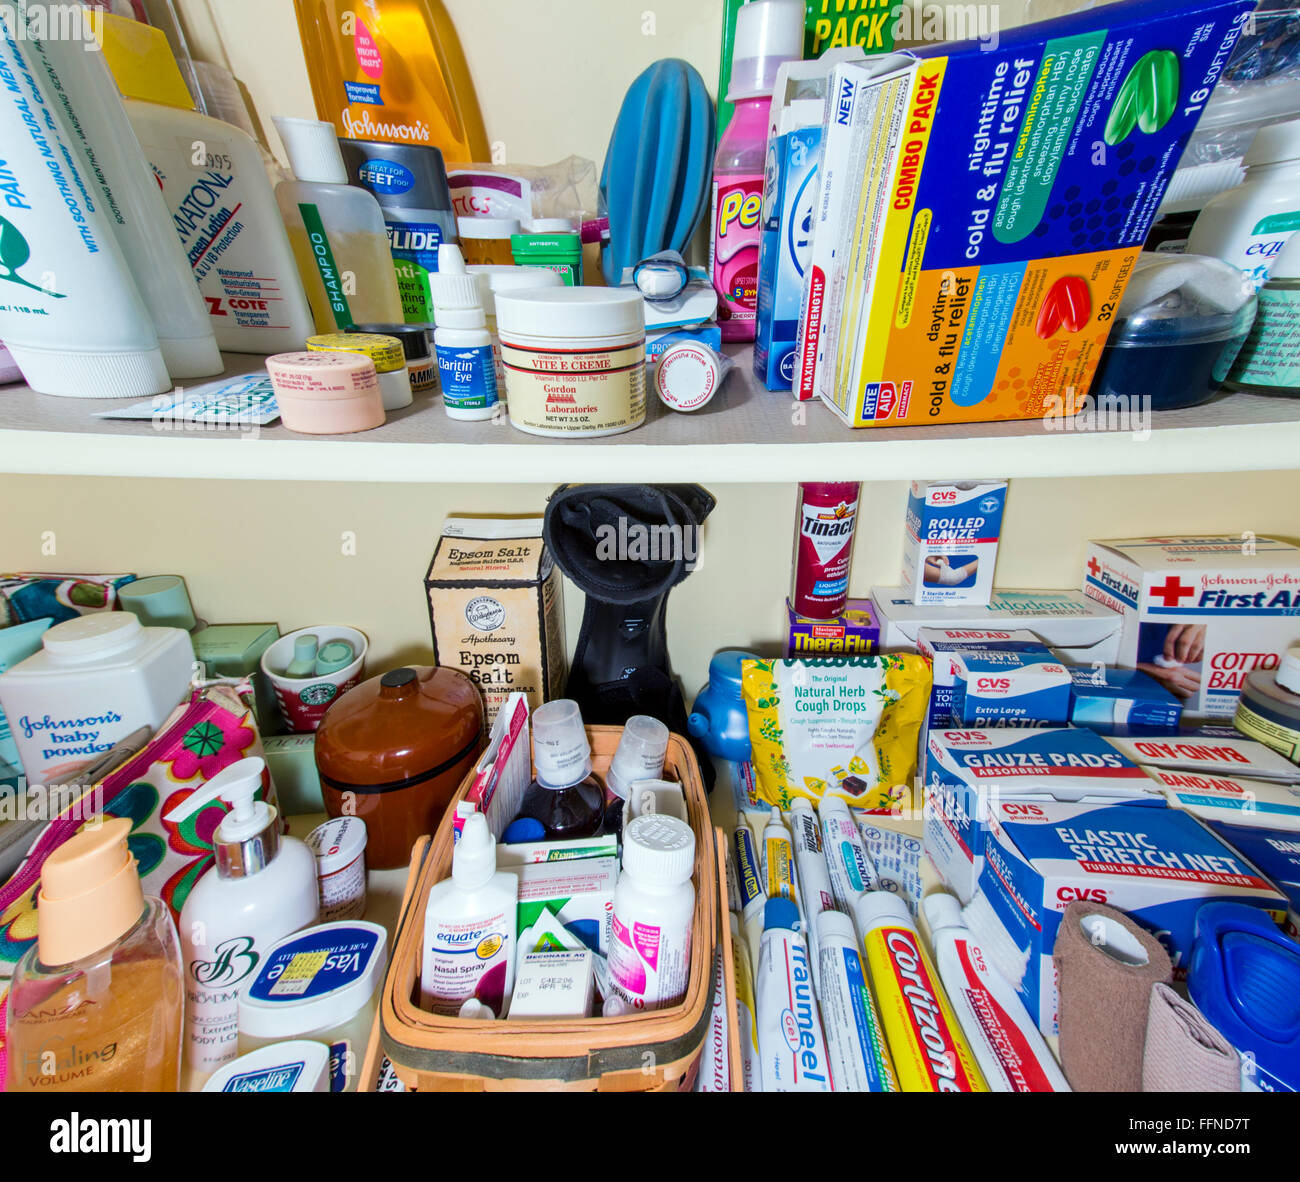 Wide angle view of home medicine cabinet shelves full of pharmaceuticals, drugs, balms, bandages, ointments and - Stock Image